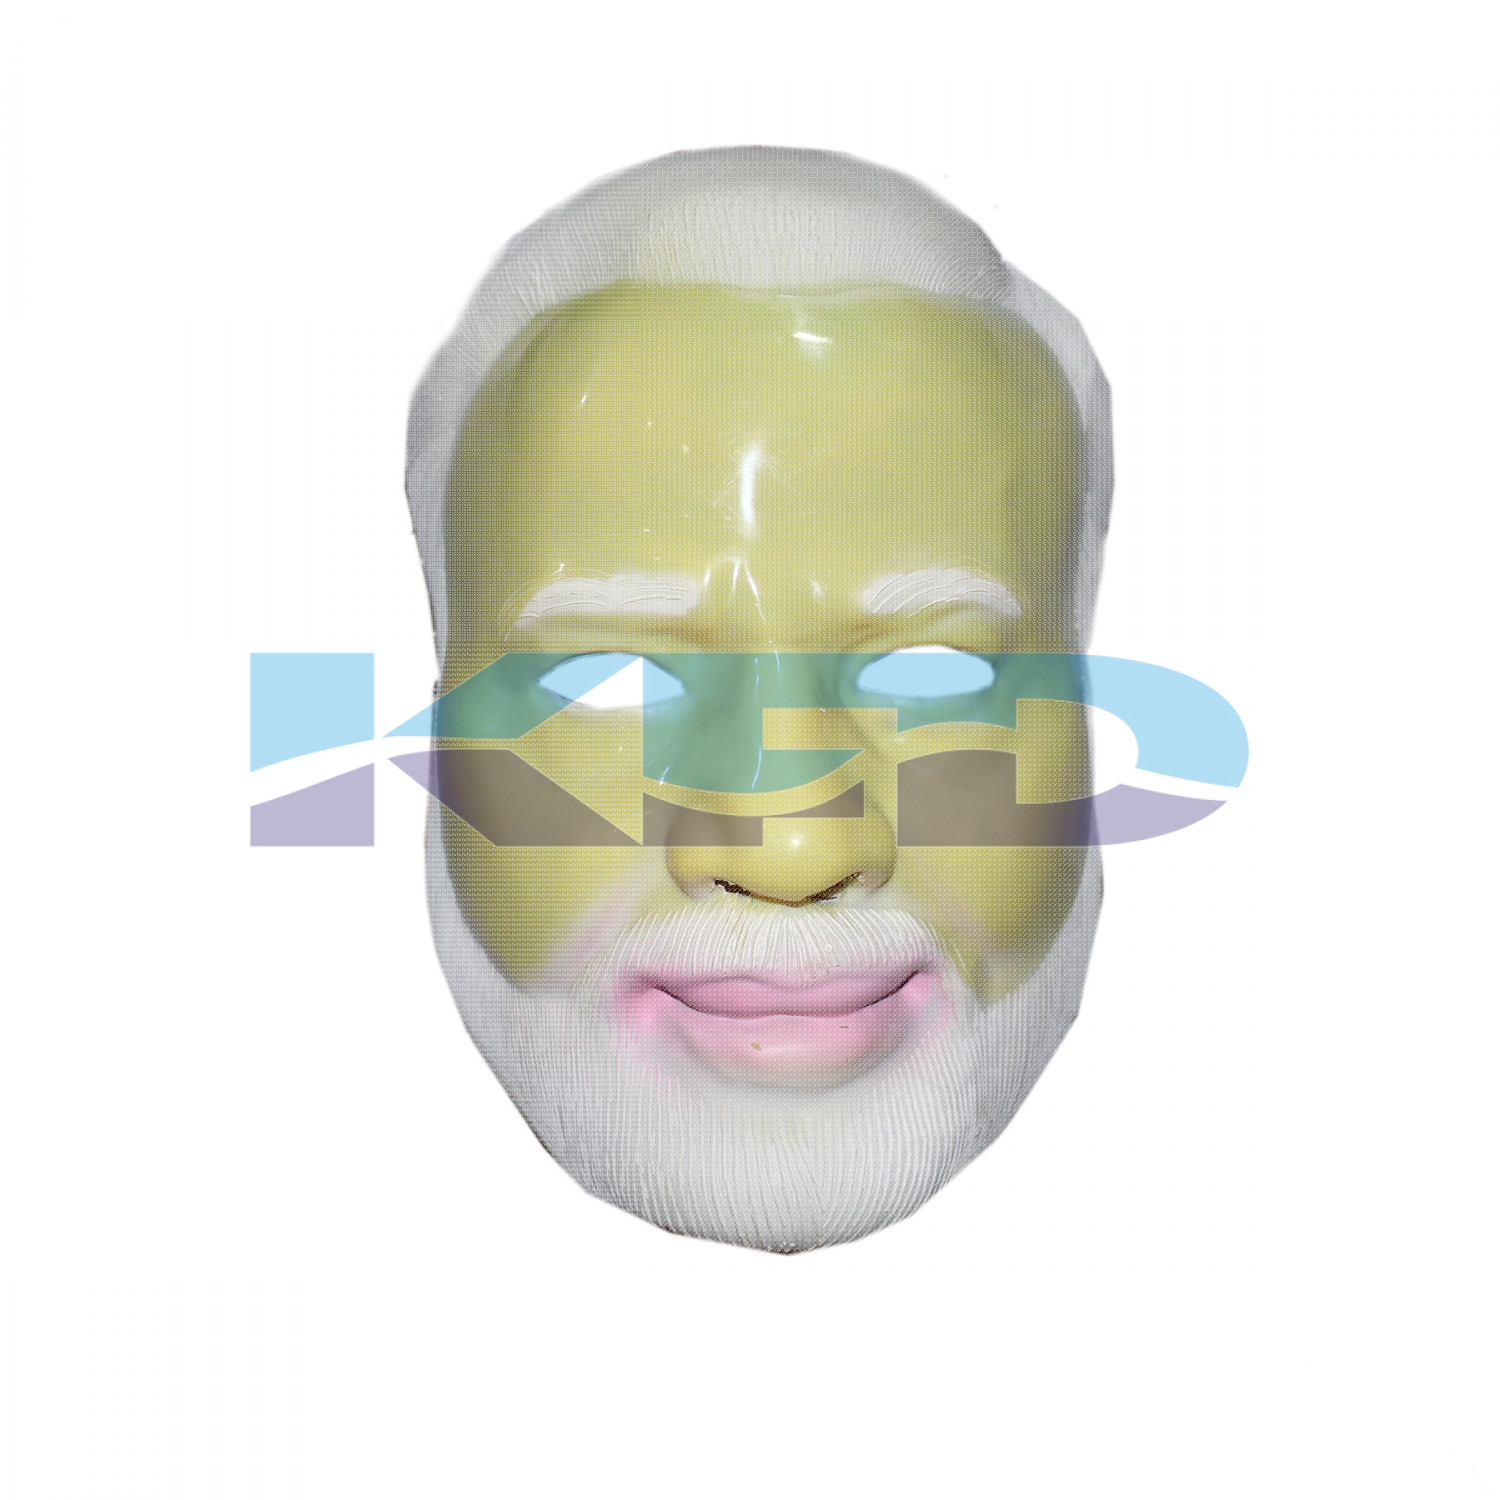 Modi Face/Modi Mask/Narendra Modi Plastic Masks/Modi Plastic Mask Very Popular In Fancy Competition/School Annual function/Theme Party/Competition/Stage Shows/Birthday Party Dress